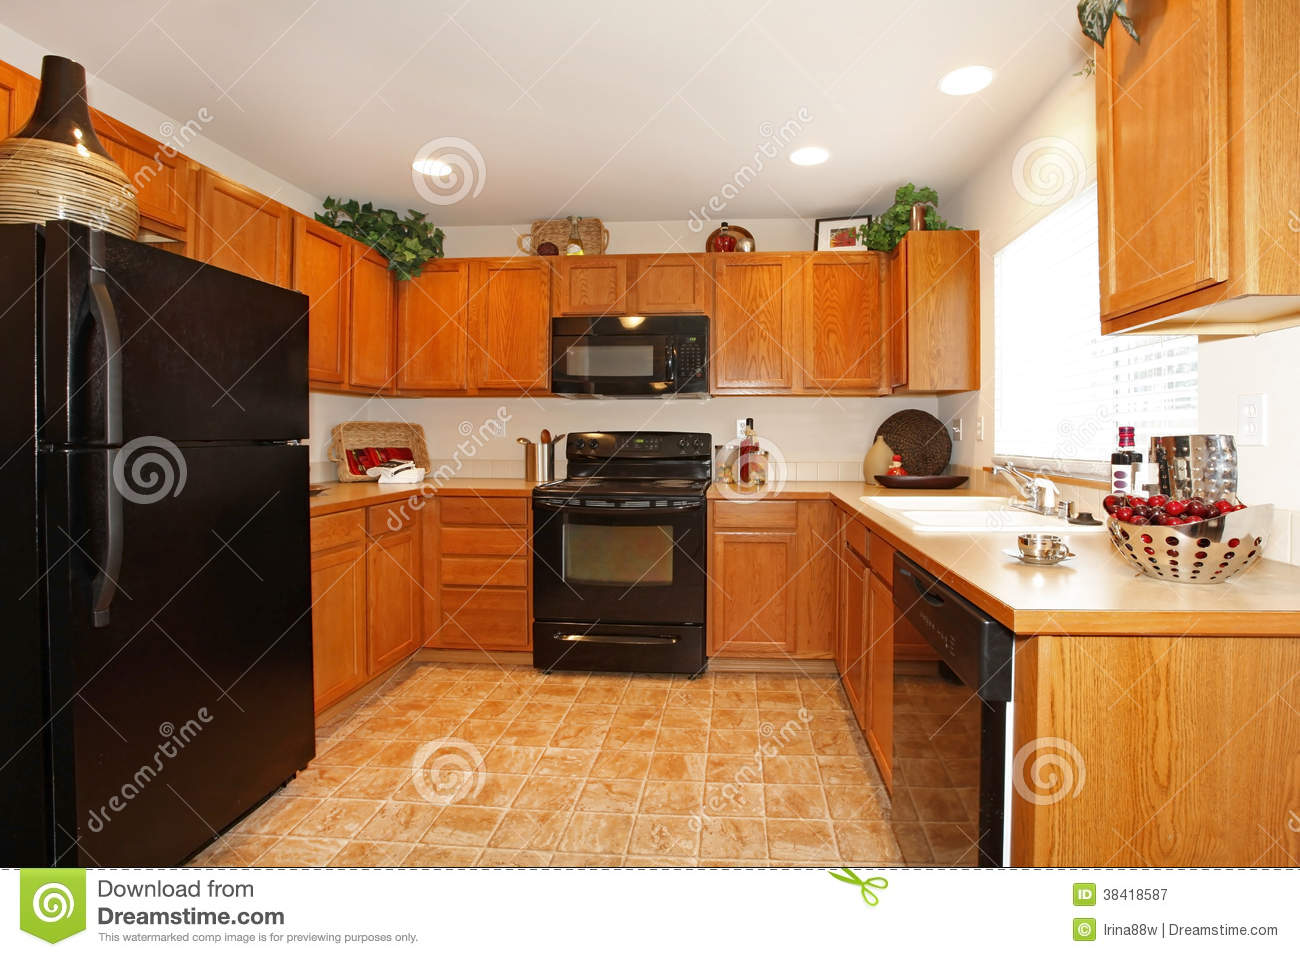 Brown Kitchen Cabinets With White Appliances Brown Kitchen Cabinets With Black Appliances Royalty Free